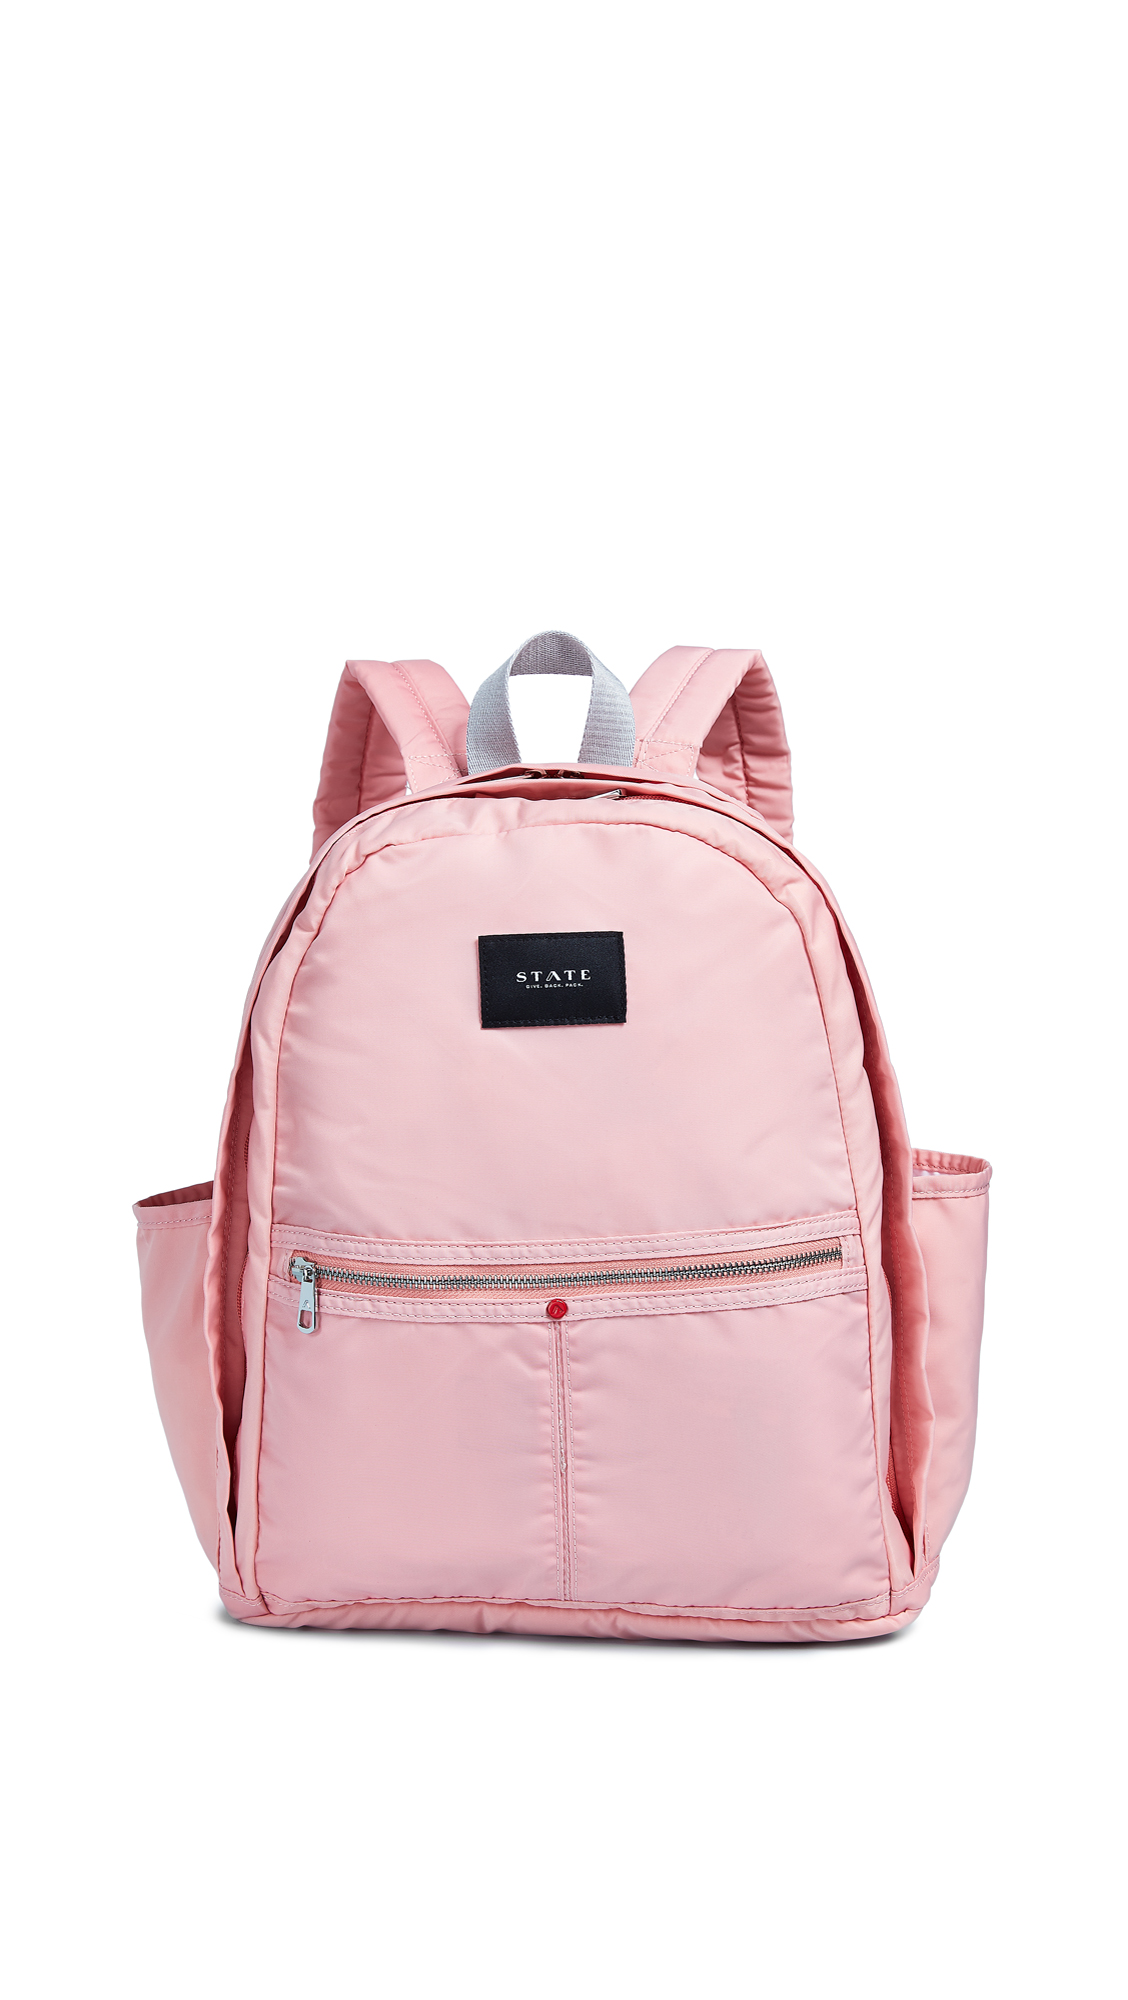 Kent Backpack in Coral/Almond